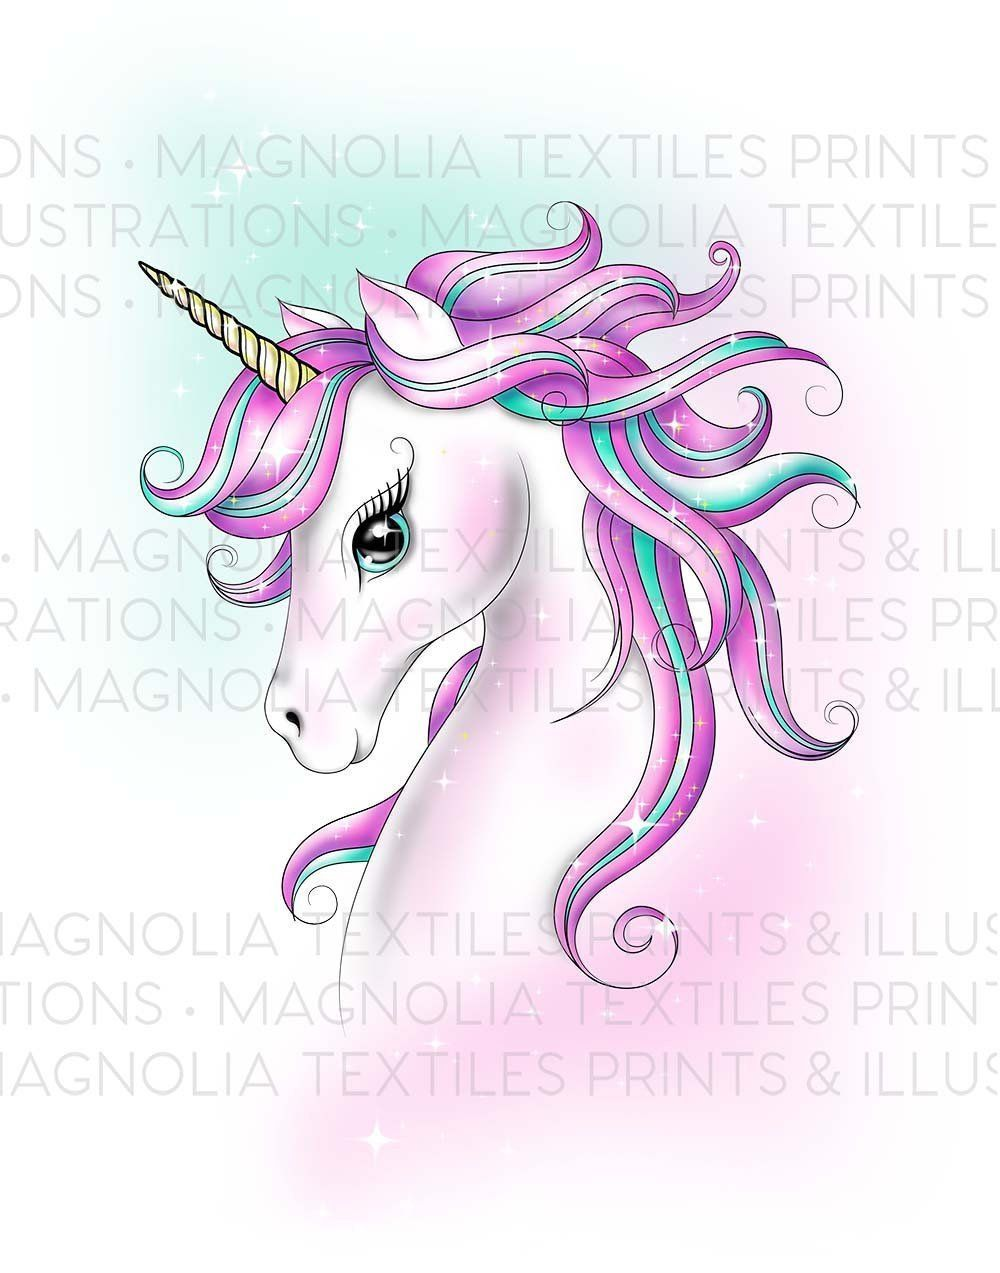 Excited to share this to my #etsy shop: UNICORN ILLUSTRATION,Unicorn, Printable Unicorn Artwork Download, Framed Poster for Girls Room, Unicorn Gift and Decor, Instant Unicorn Art https://etsy.me/2z1X65g #art #drawing #unicorn  visit my site at magnoliaprintsshop.com